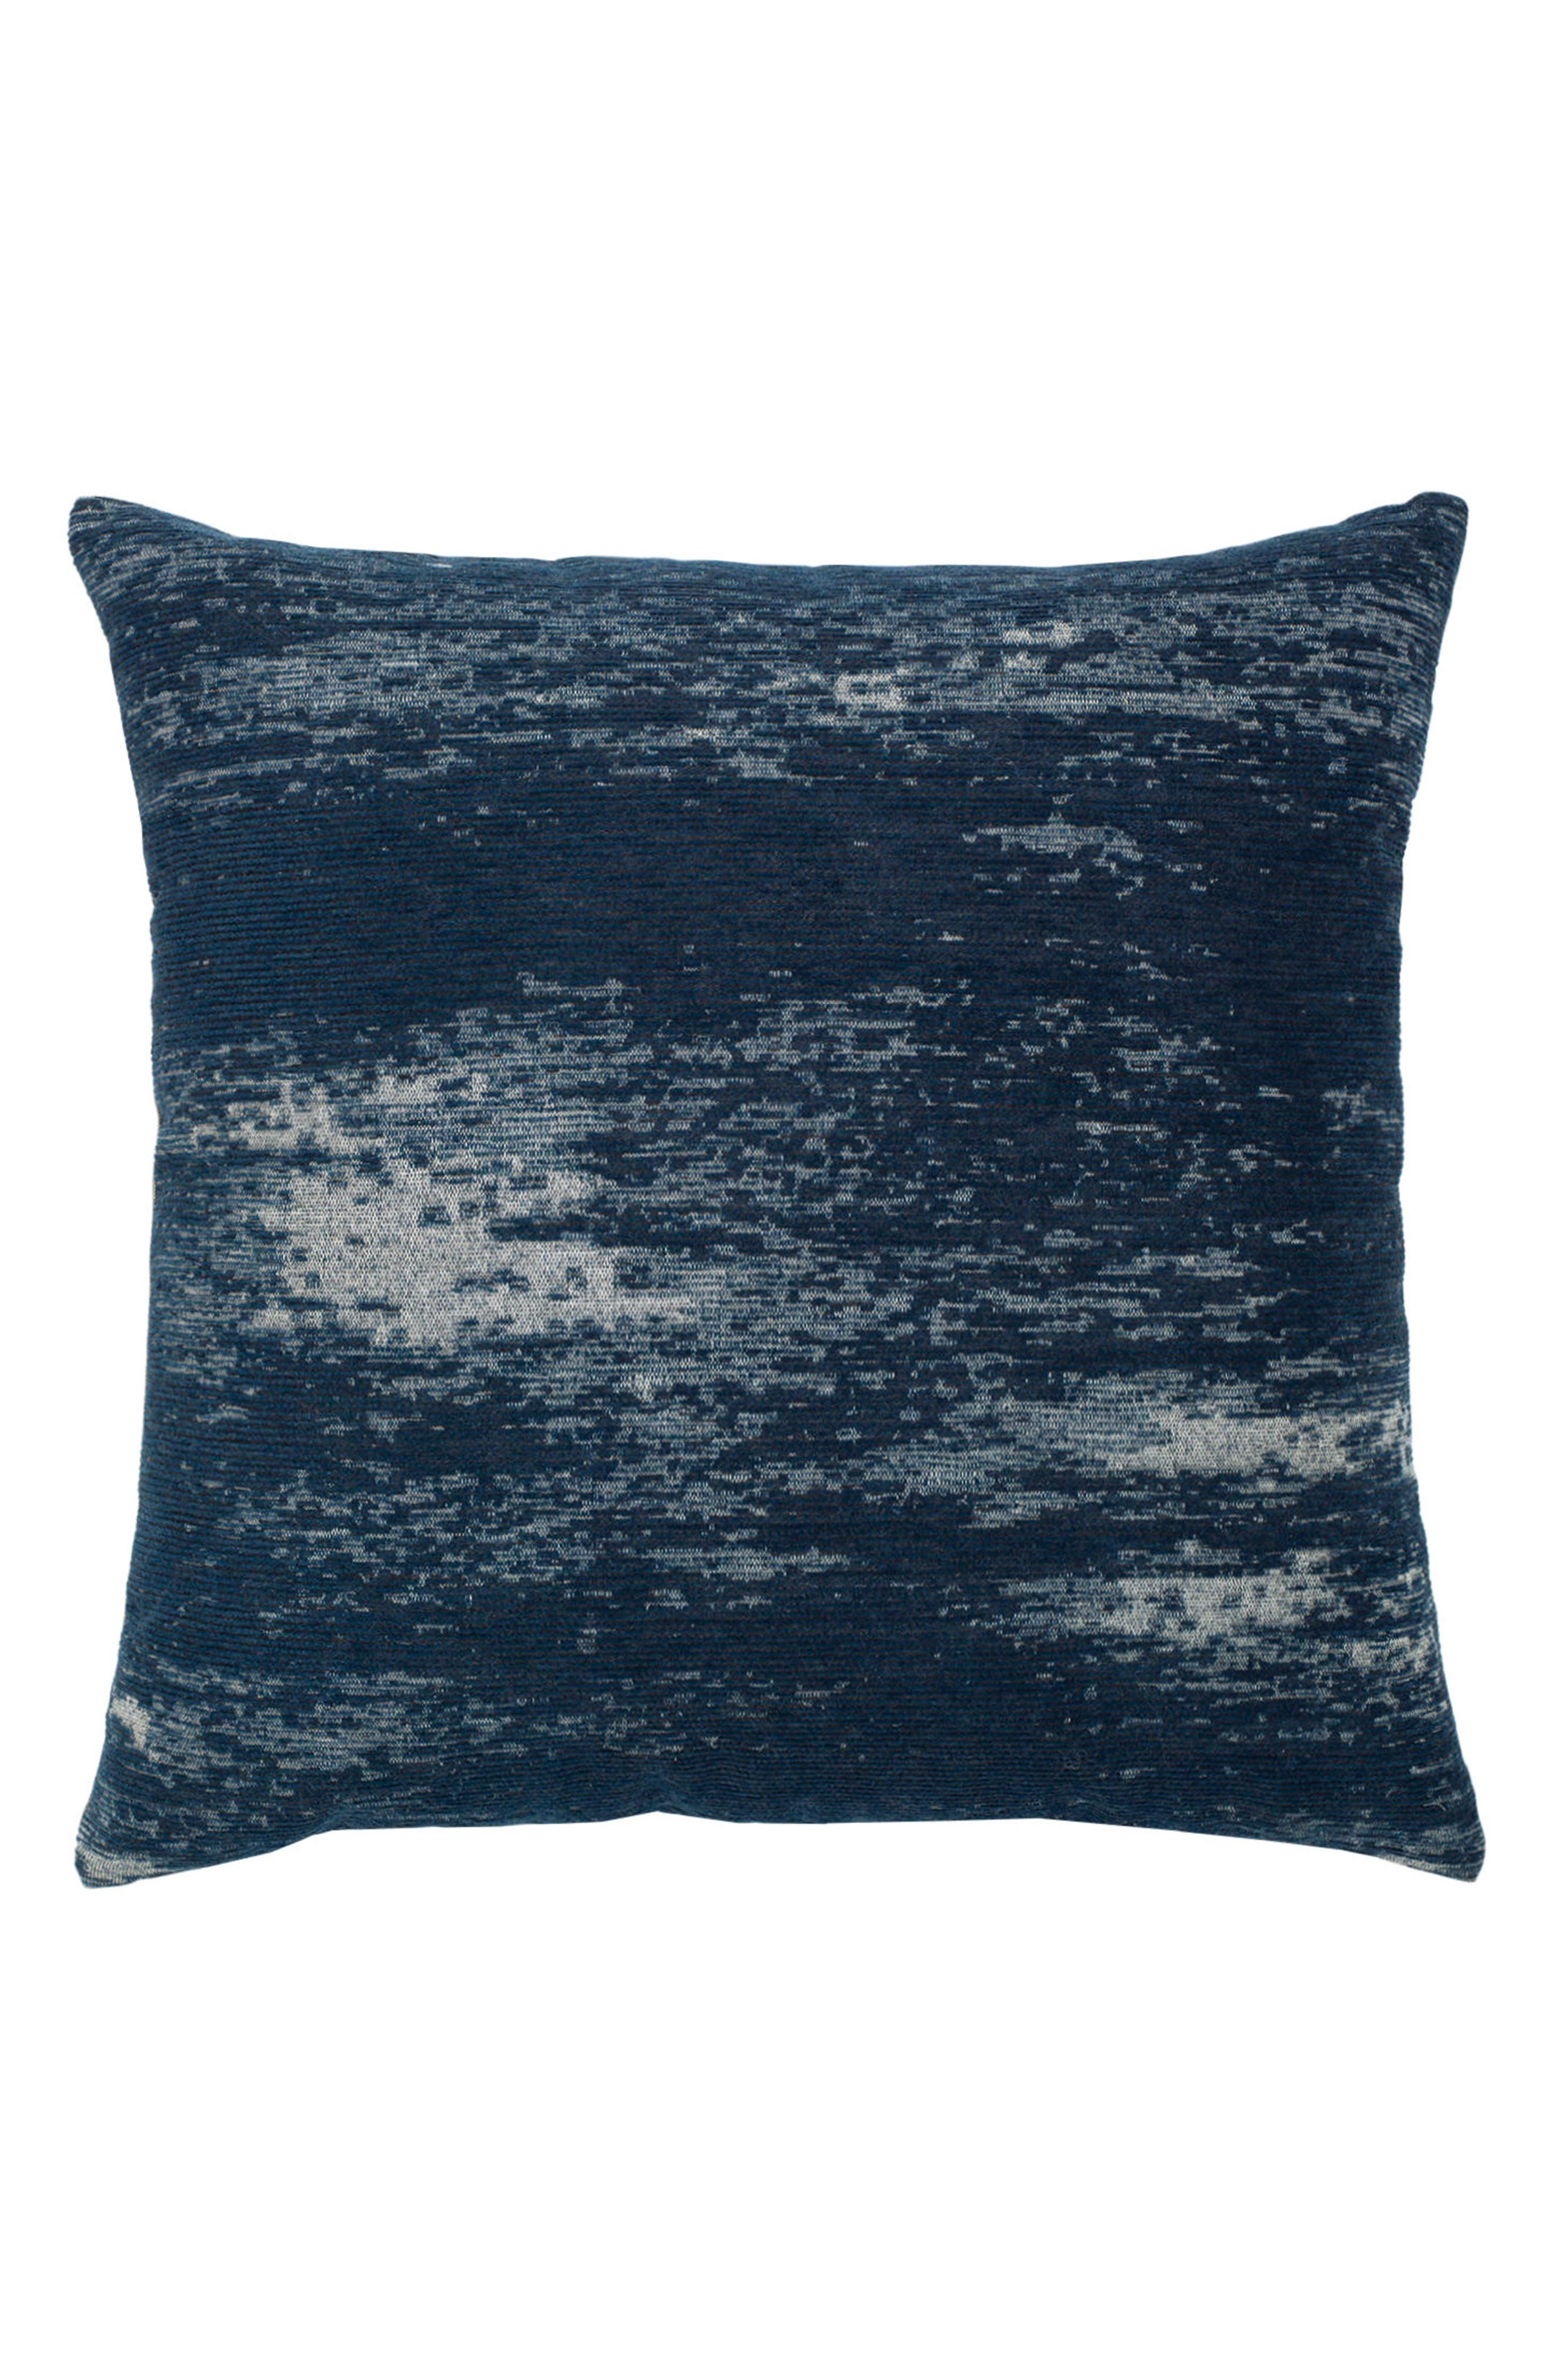 Distressed Indigo Indoor/Outdoor Accent Pillow,                             Main thumbnail 1, color,                             400